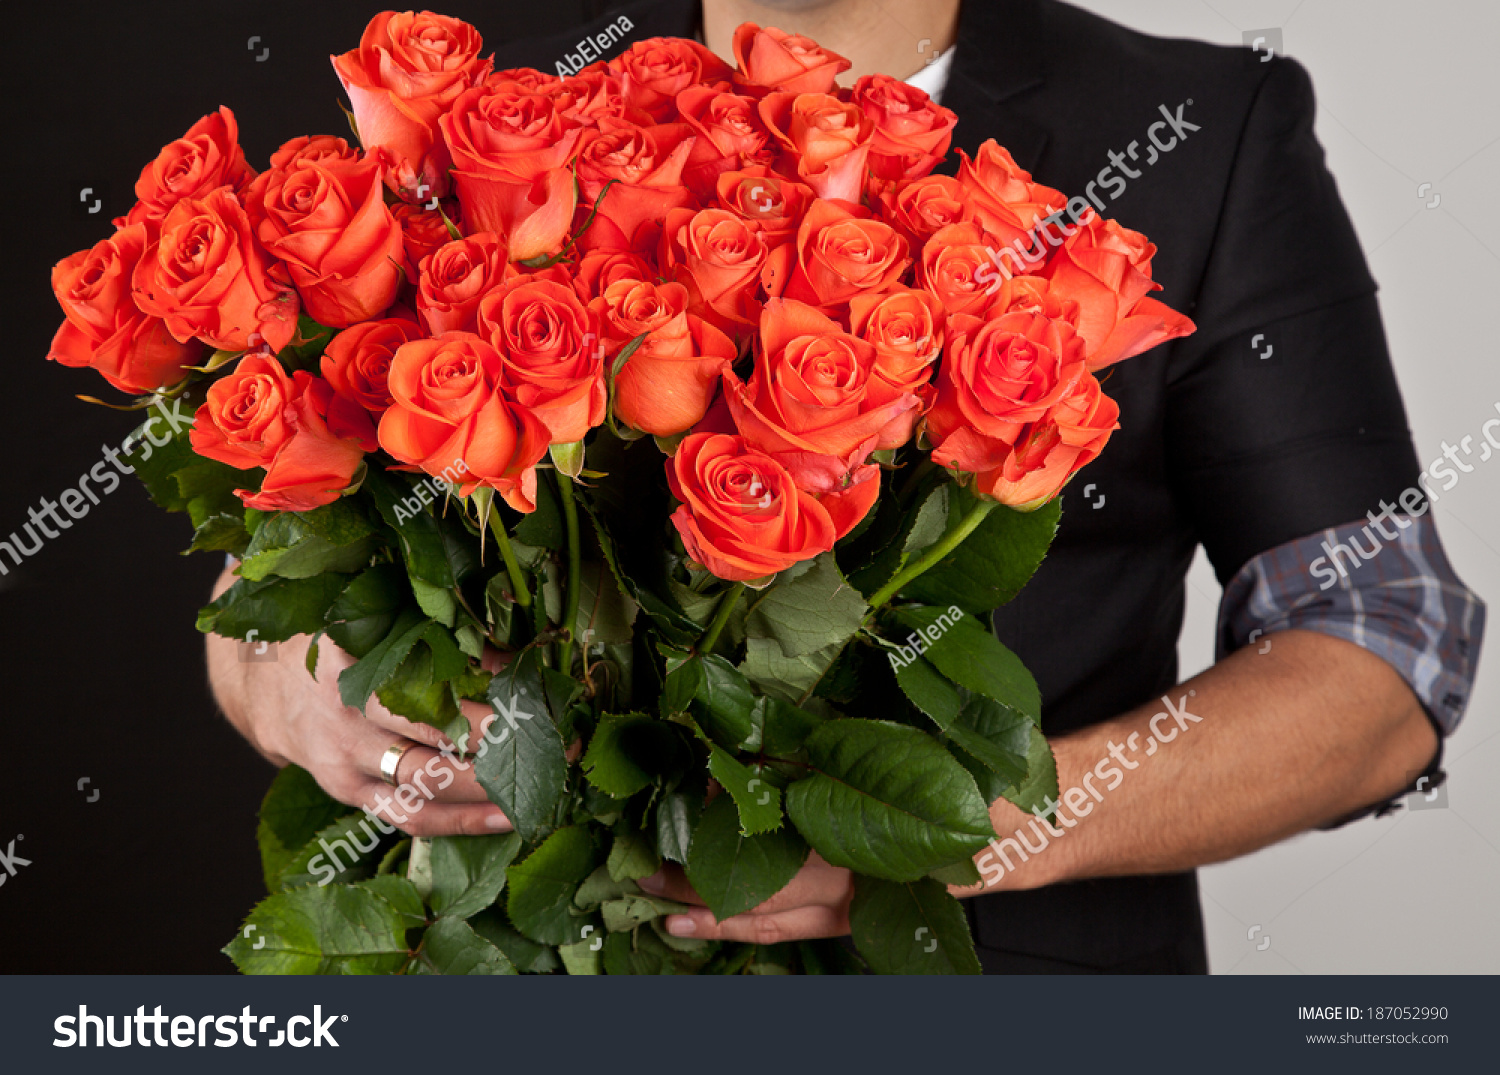 Beautiful Big Bouquet Red Roses Man Stock Photo (Edit Now) 187052990 ...